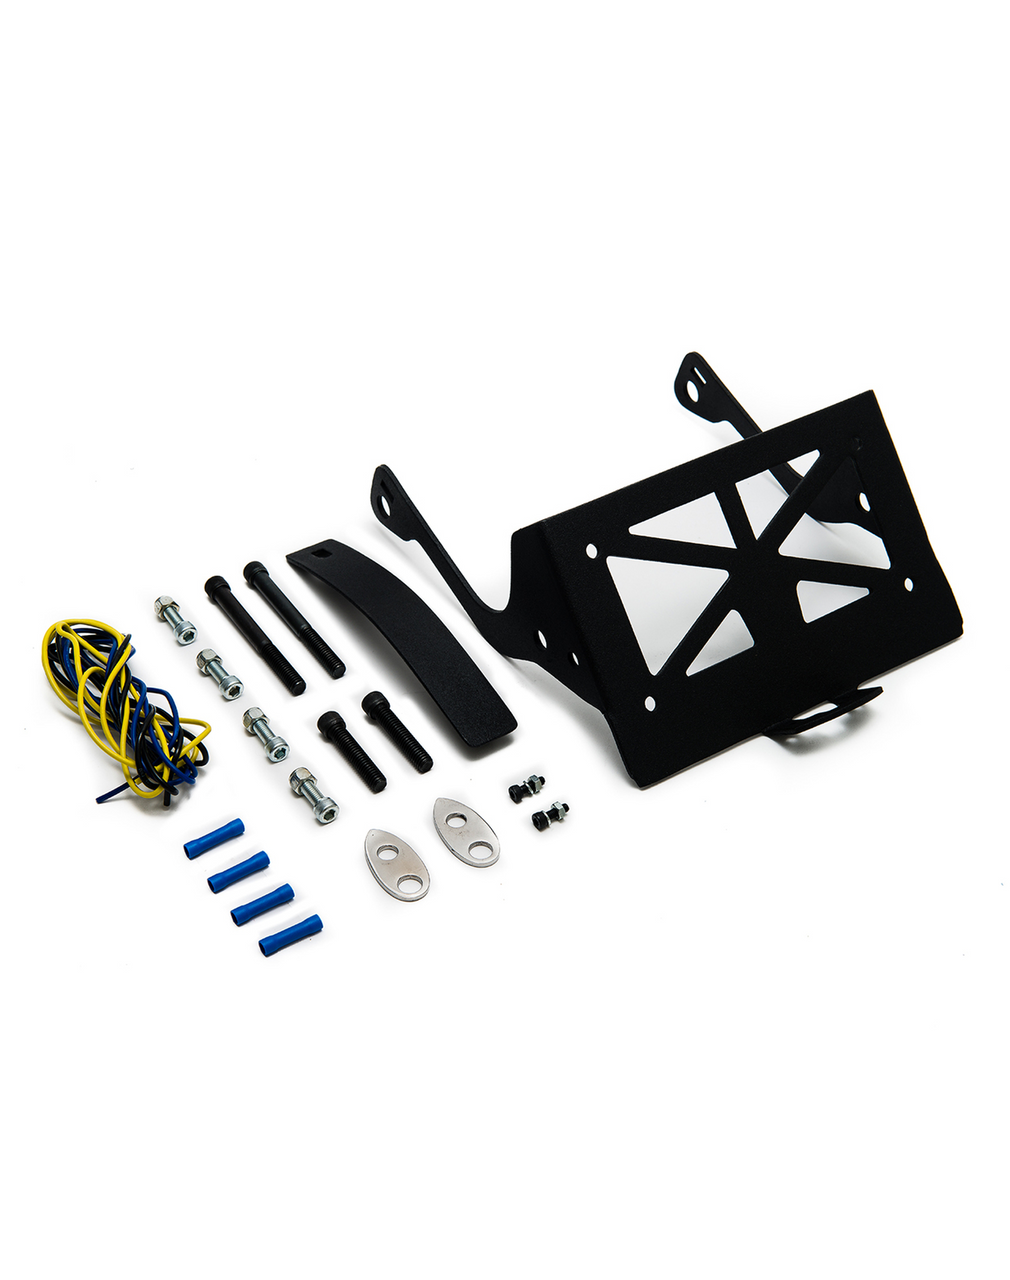 Sportster Licence Plate and Turn Signal Relocation Kit with Nets and Bolts